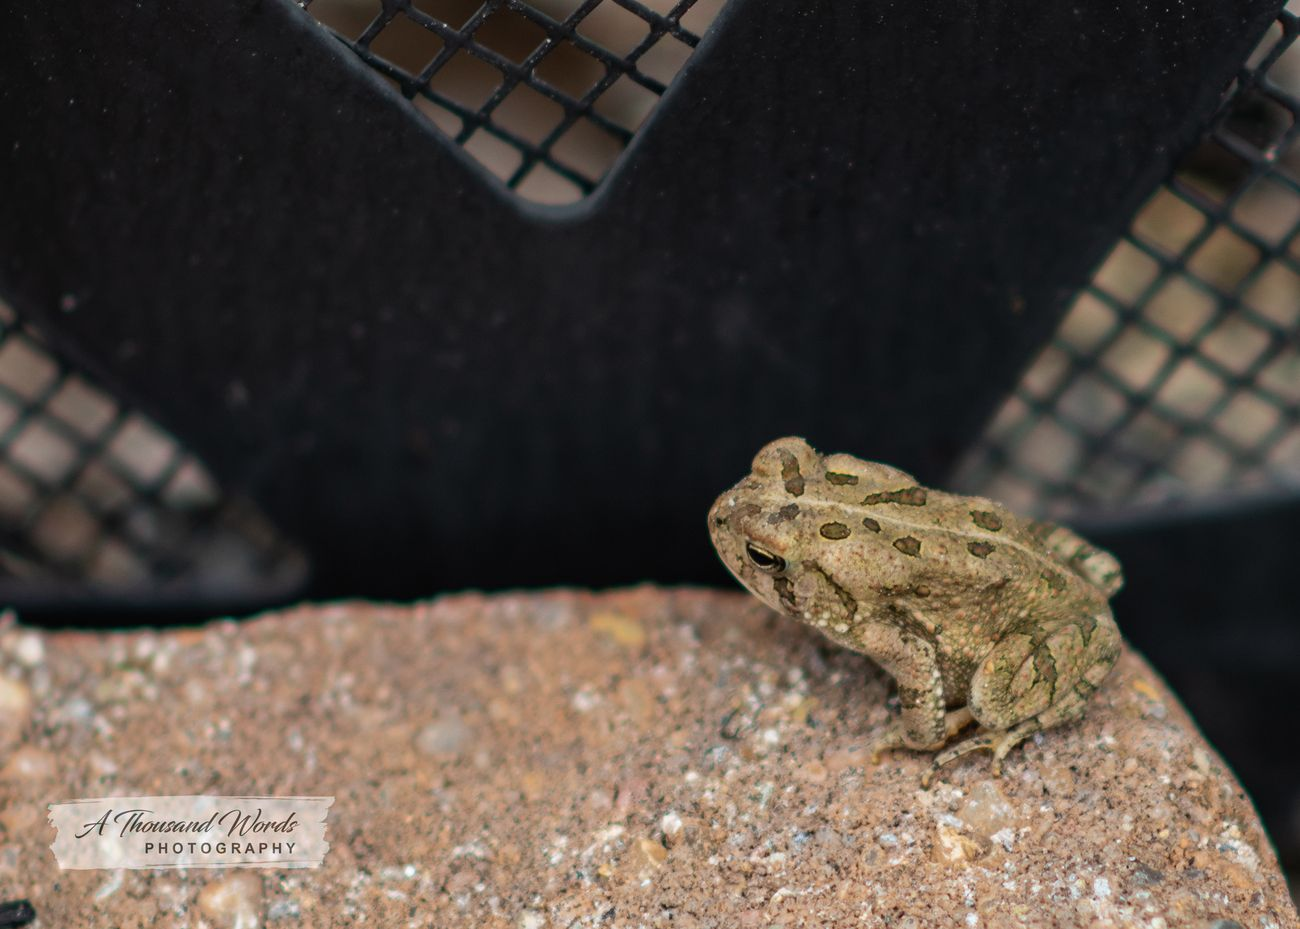 Copyright 2019 A Thousand Words Photography. Toad warming himself by the campfire.